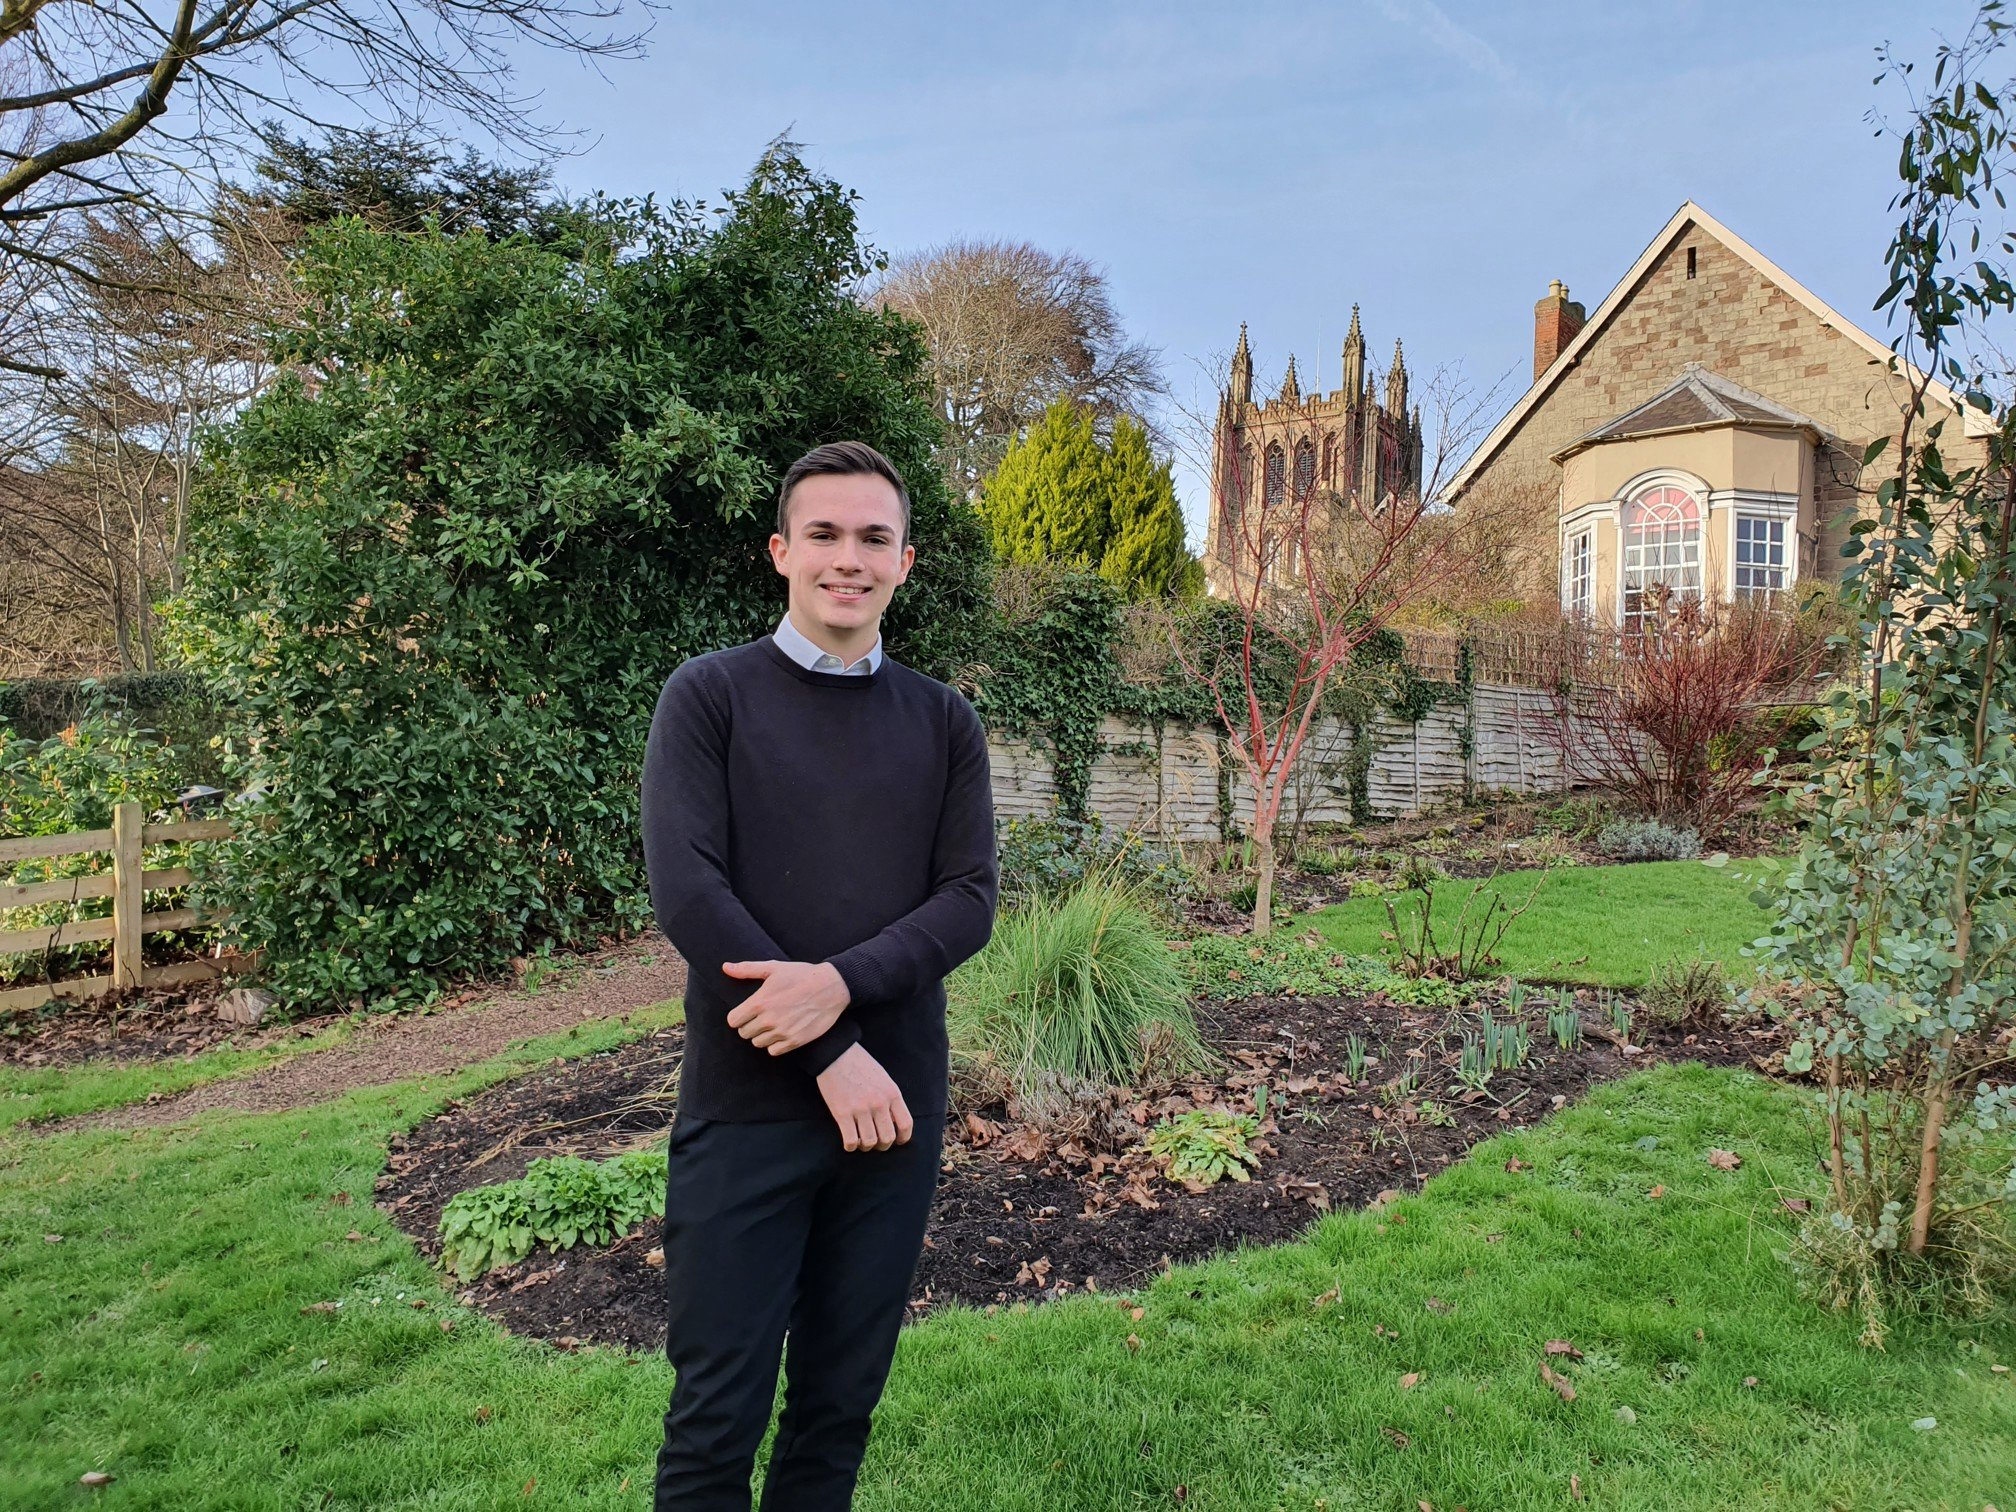 Ollie Fulwell standing in the Canons Garden with the cathedral tower in the background. It is sunny and he is smiling for the camera